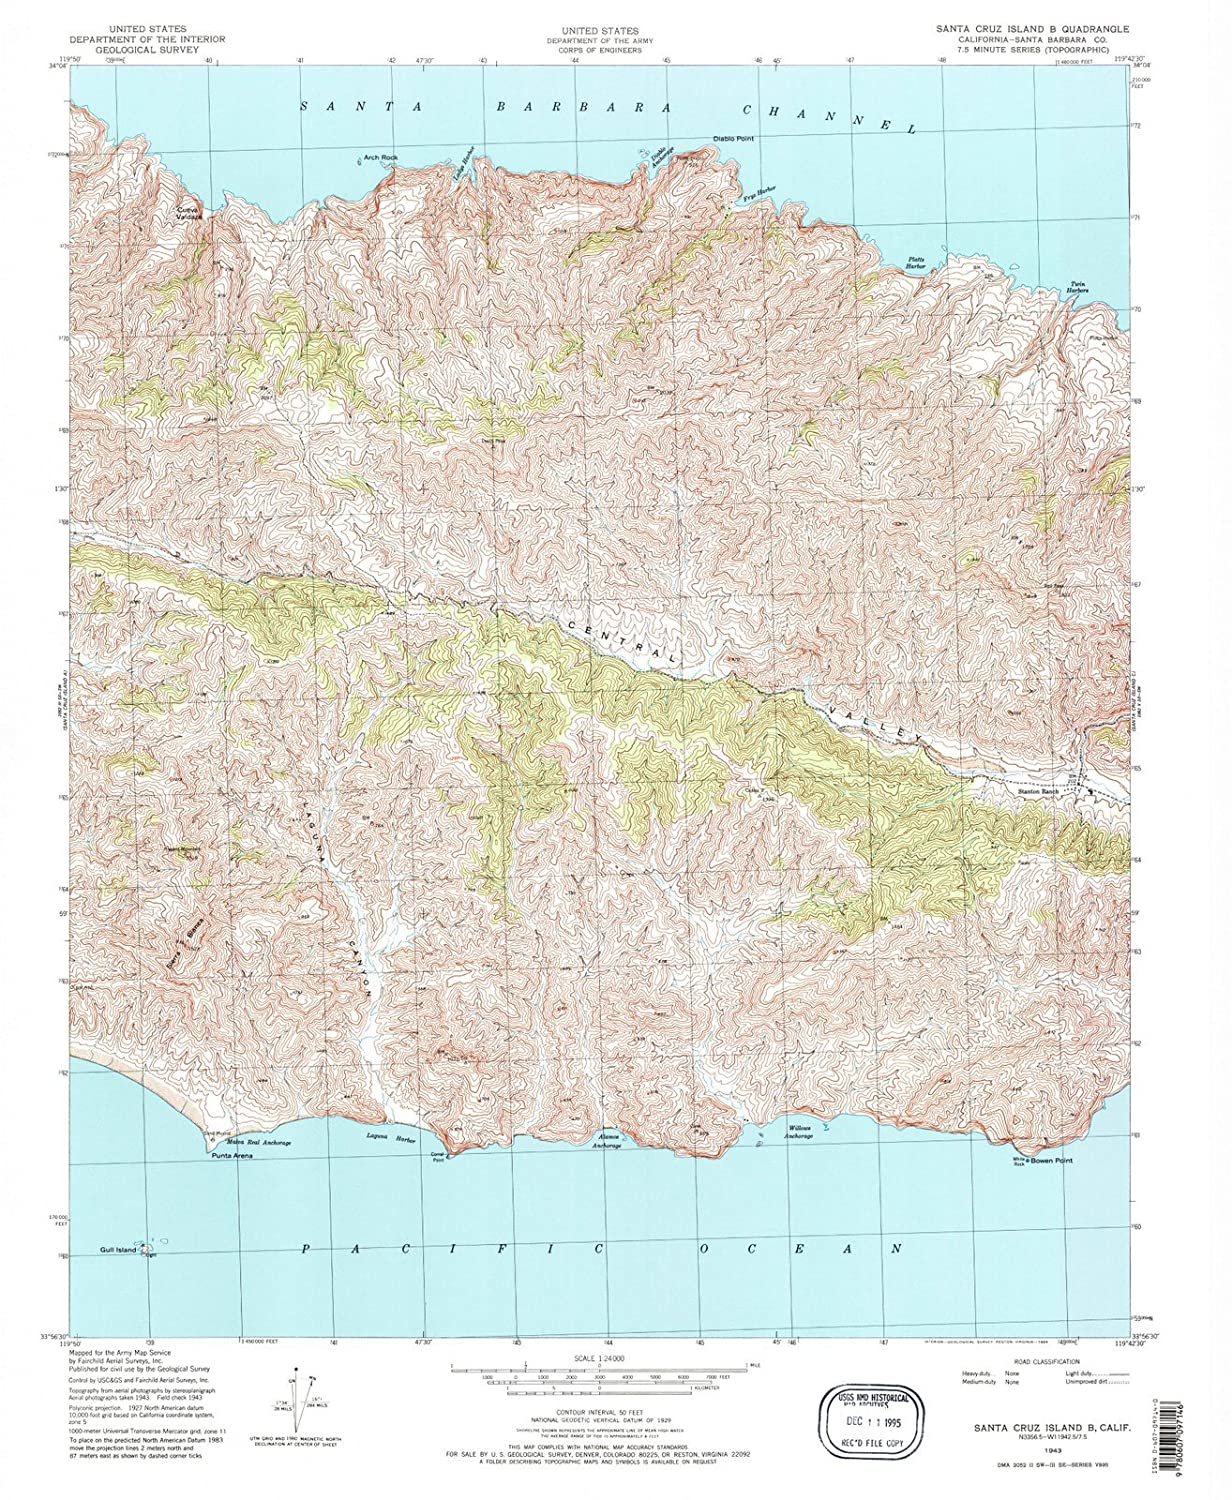 Santa Cruz California Map.California Maps 1943 Santa Cruz Island B Ca Usgs Historical